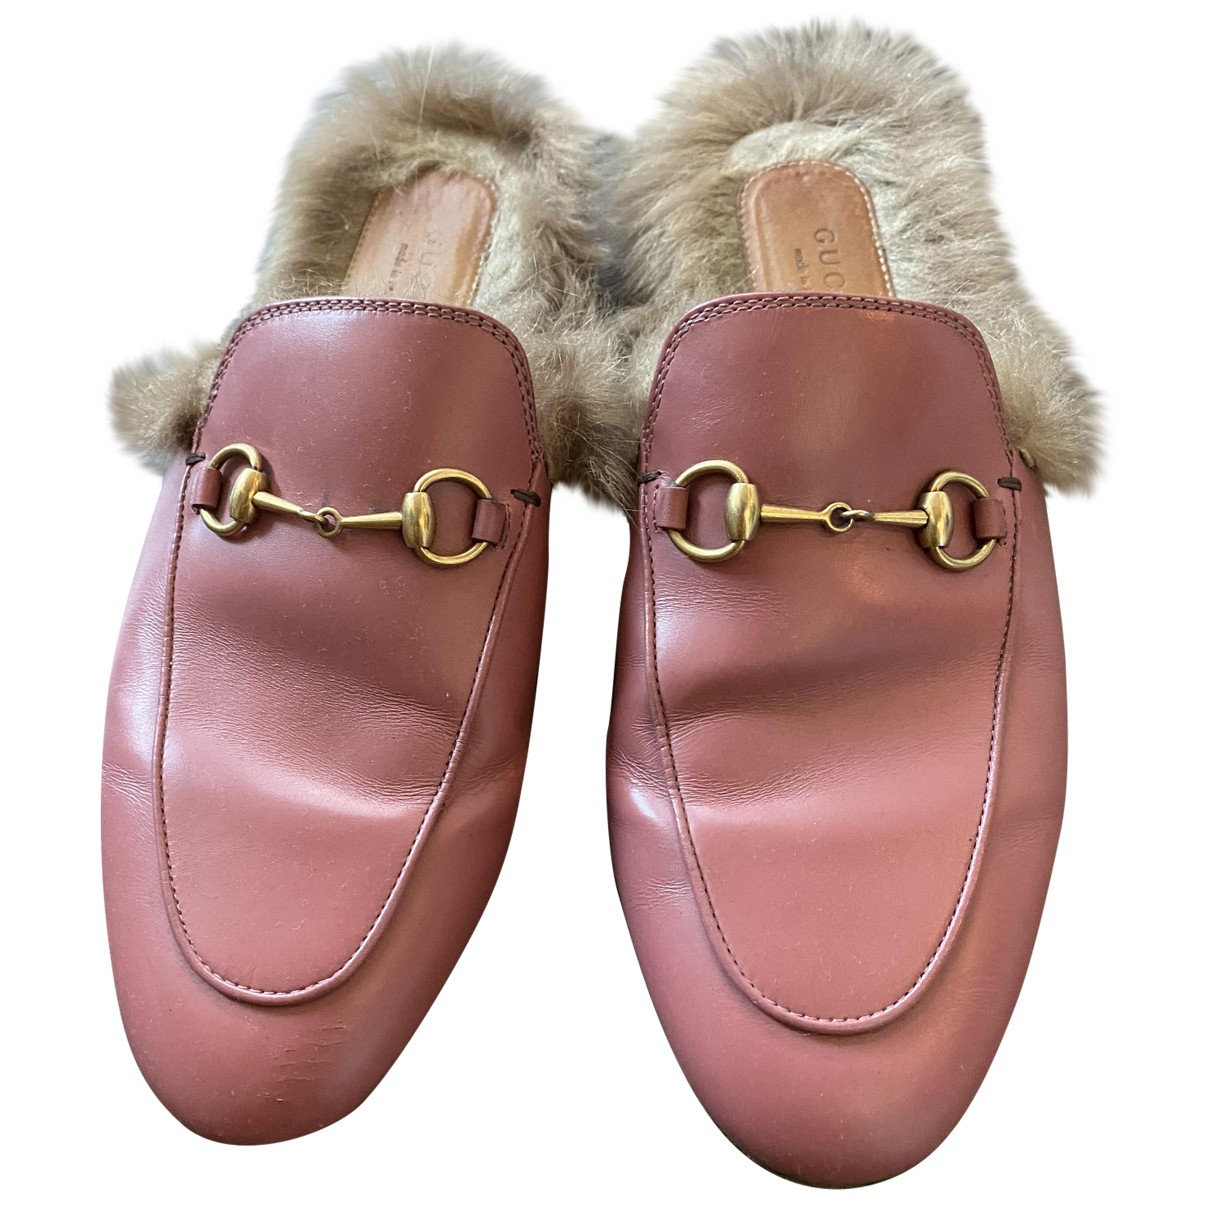 Gucci Princetown Pink Leather Flats for Women 37 EU